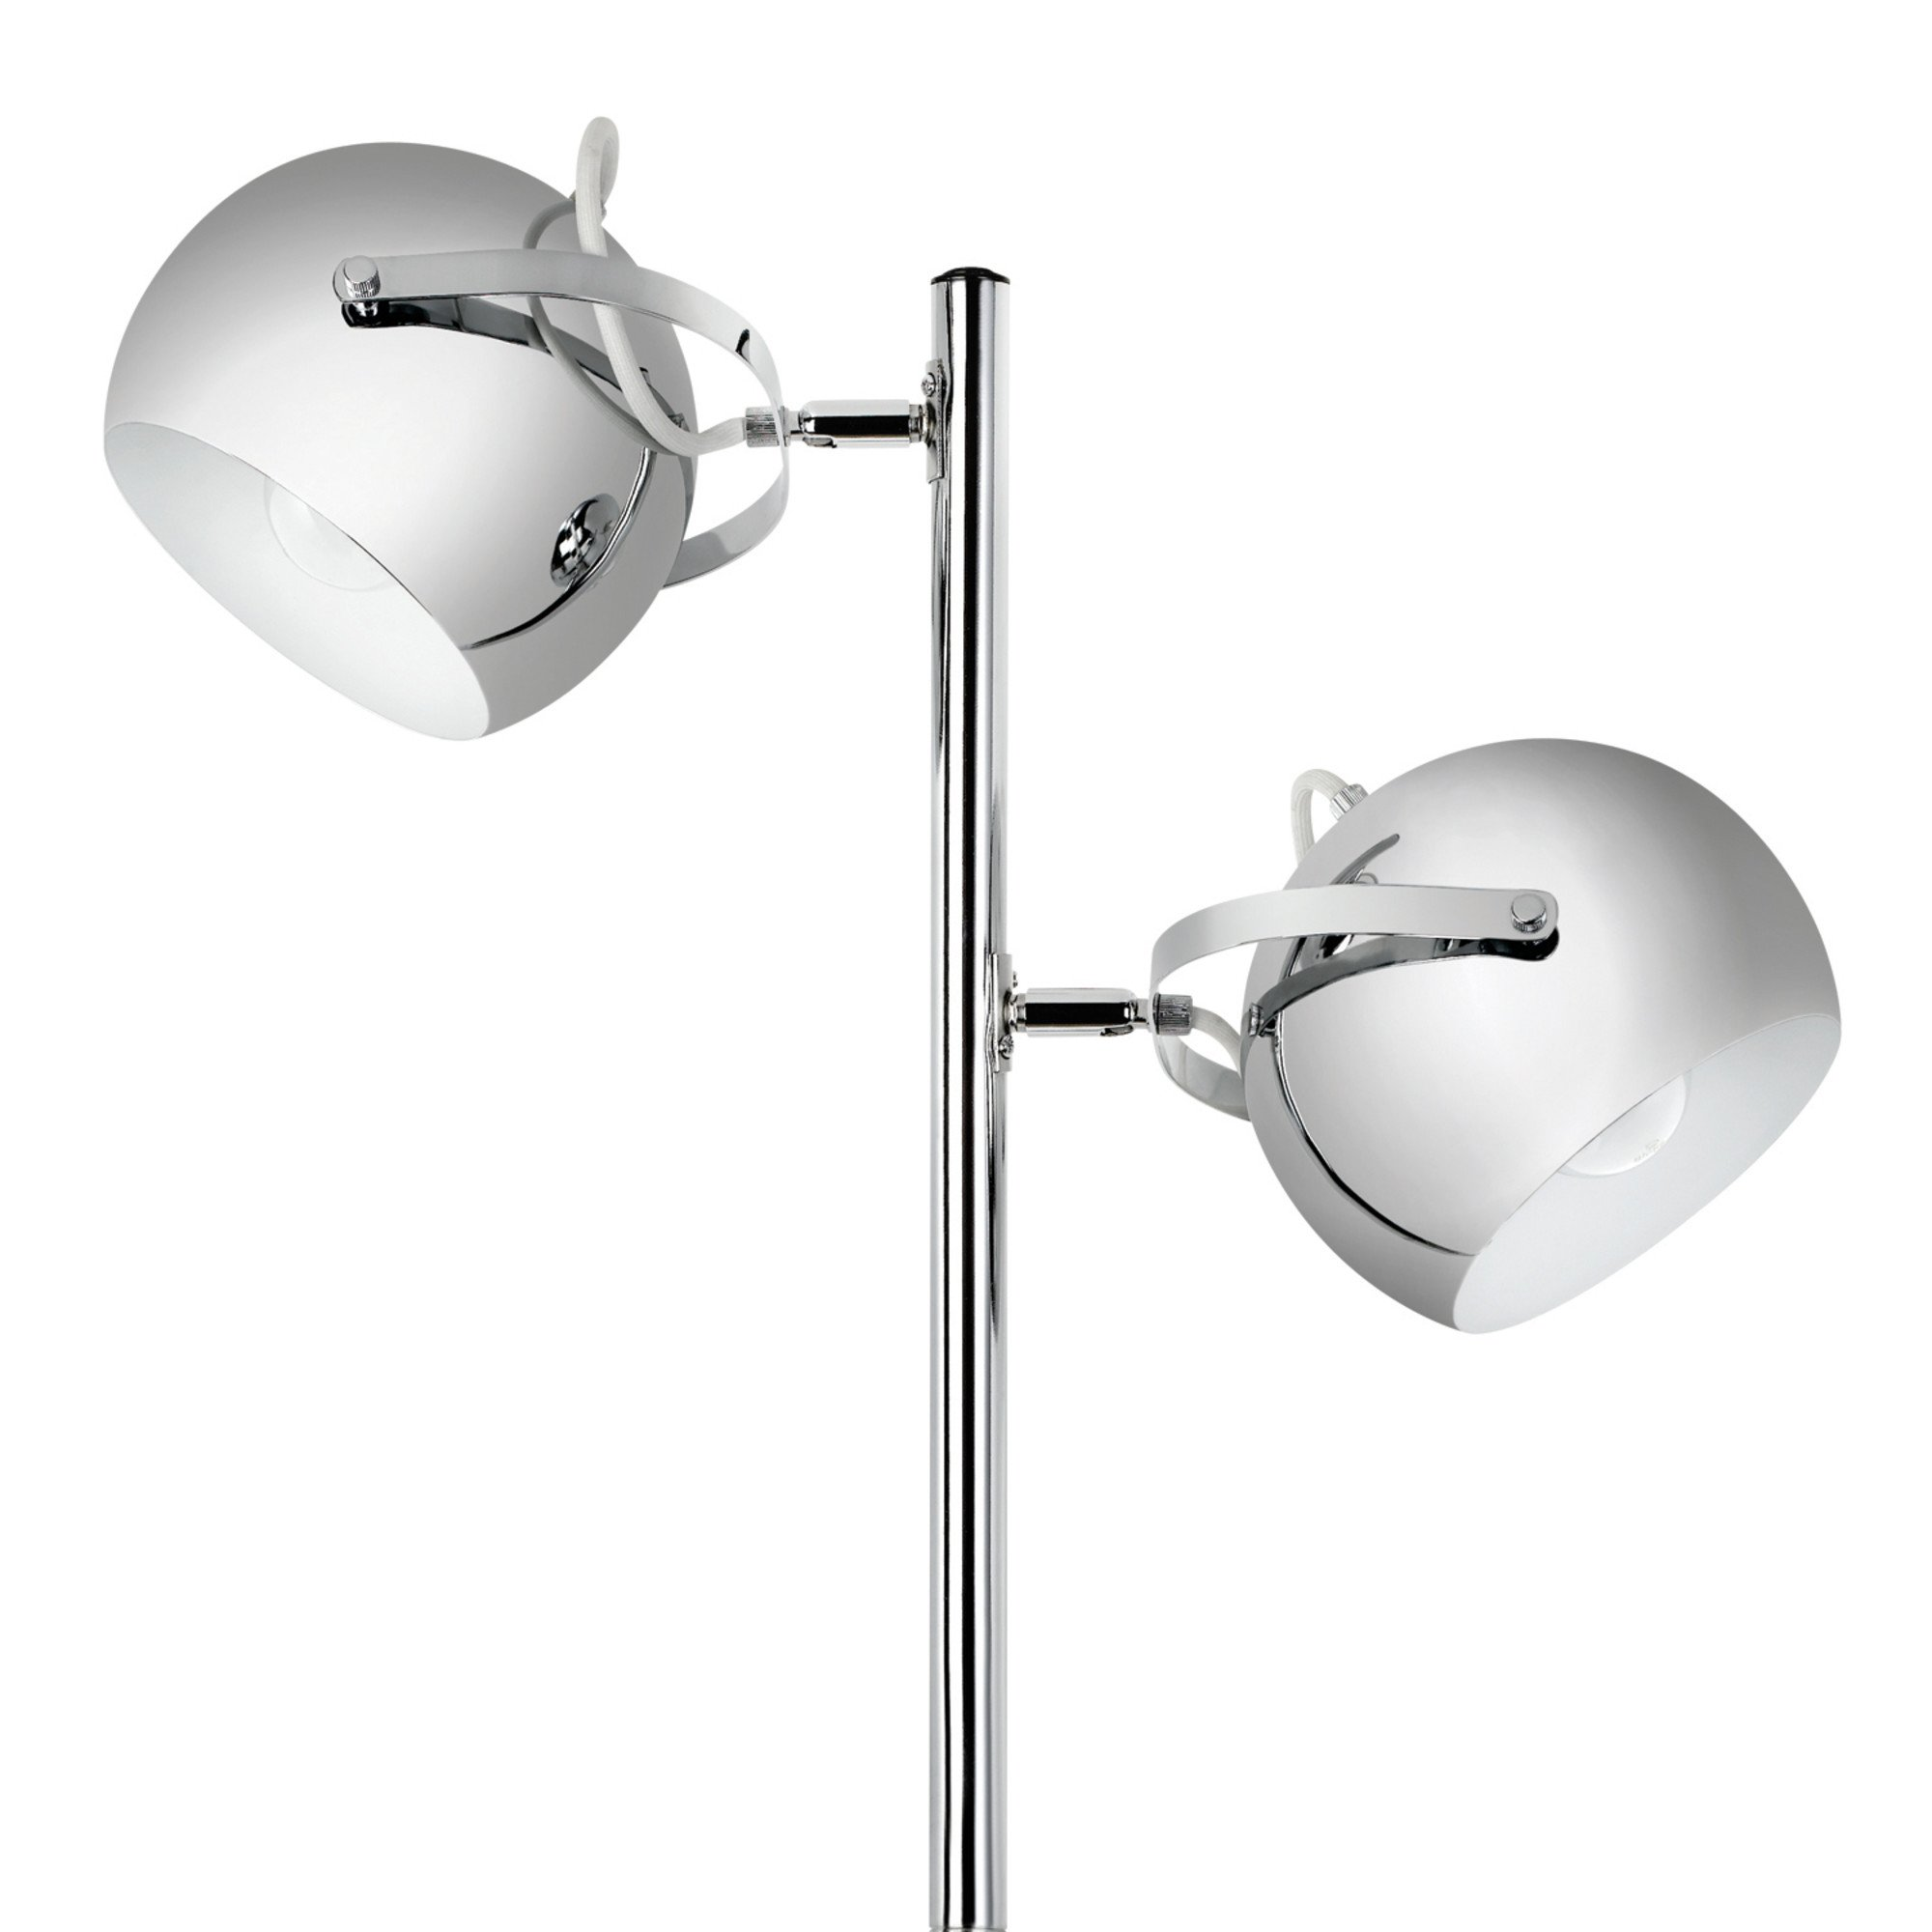 Globe Electric Miles 2-Light Adjustable Head Floor Lamp, On/Off Foot Switch, Chrome Finish, 12807 by Globe Electric (Image #3)